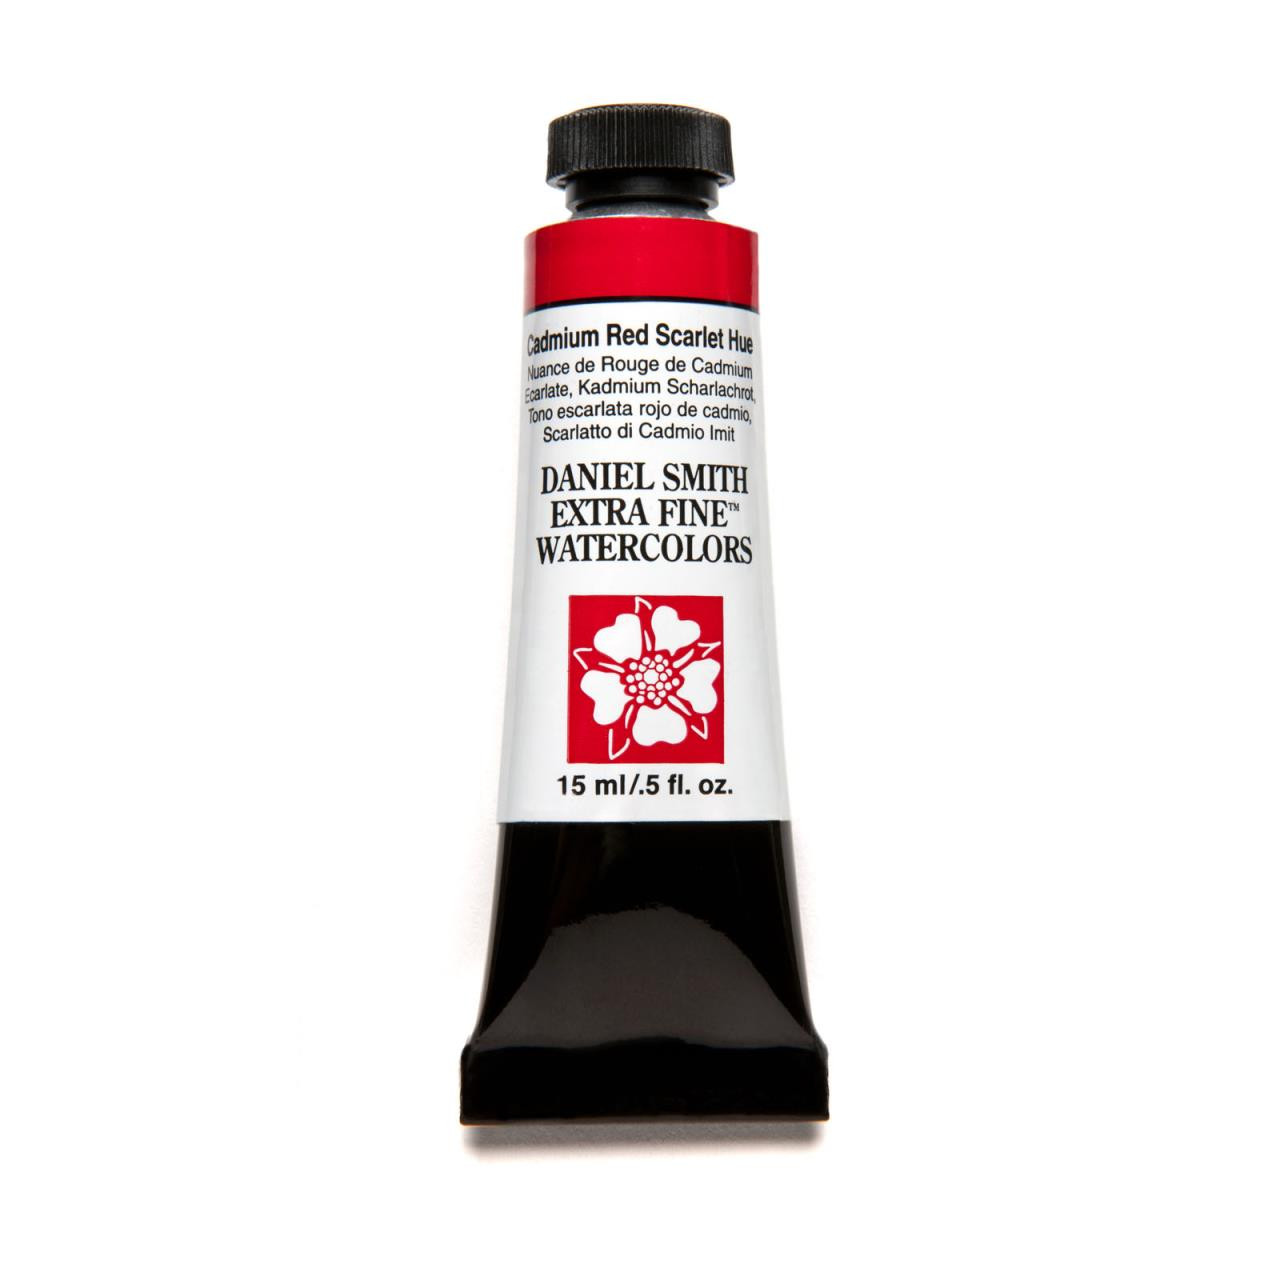 Cadmium Red Scarlet Hue, DANIEL SMITH Extra Fine Watercolors 15ml Tubes -